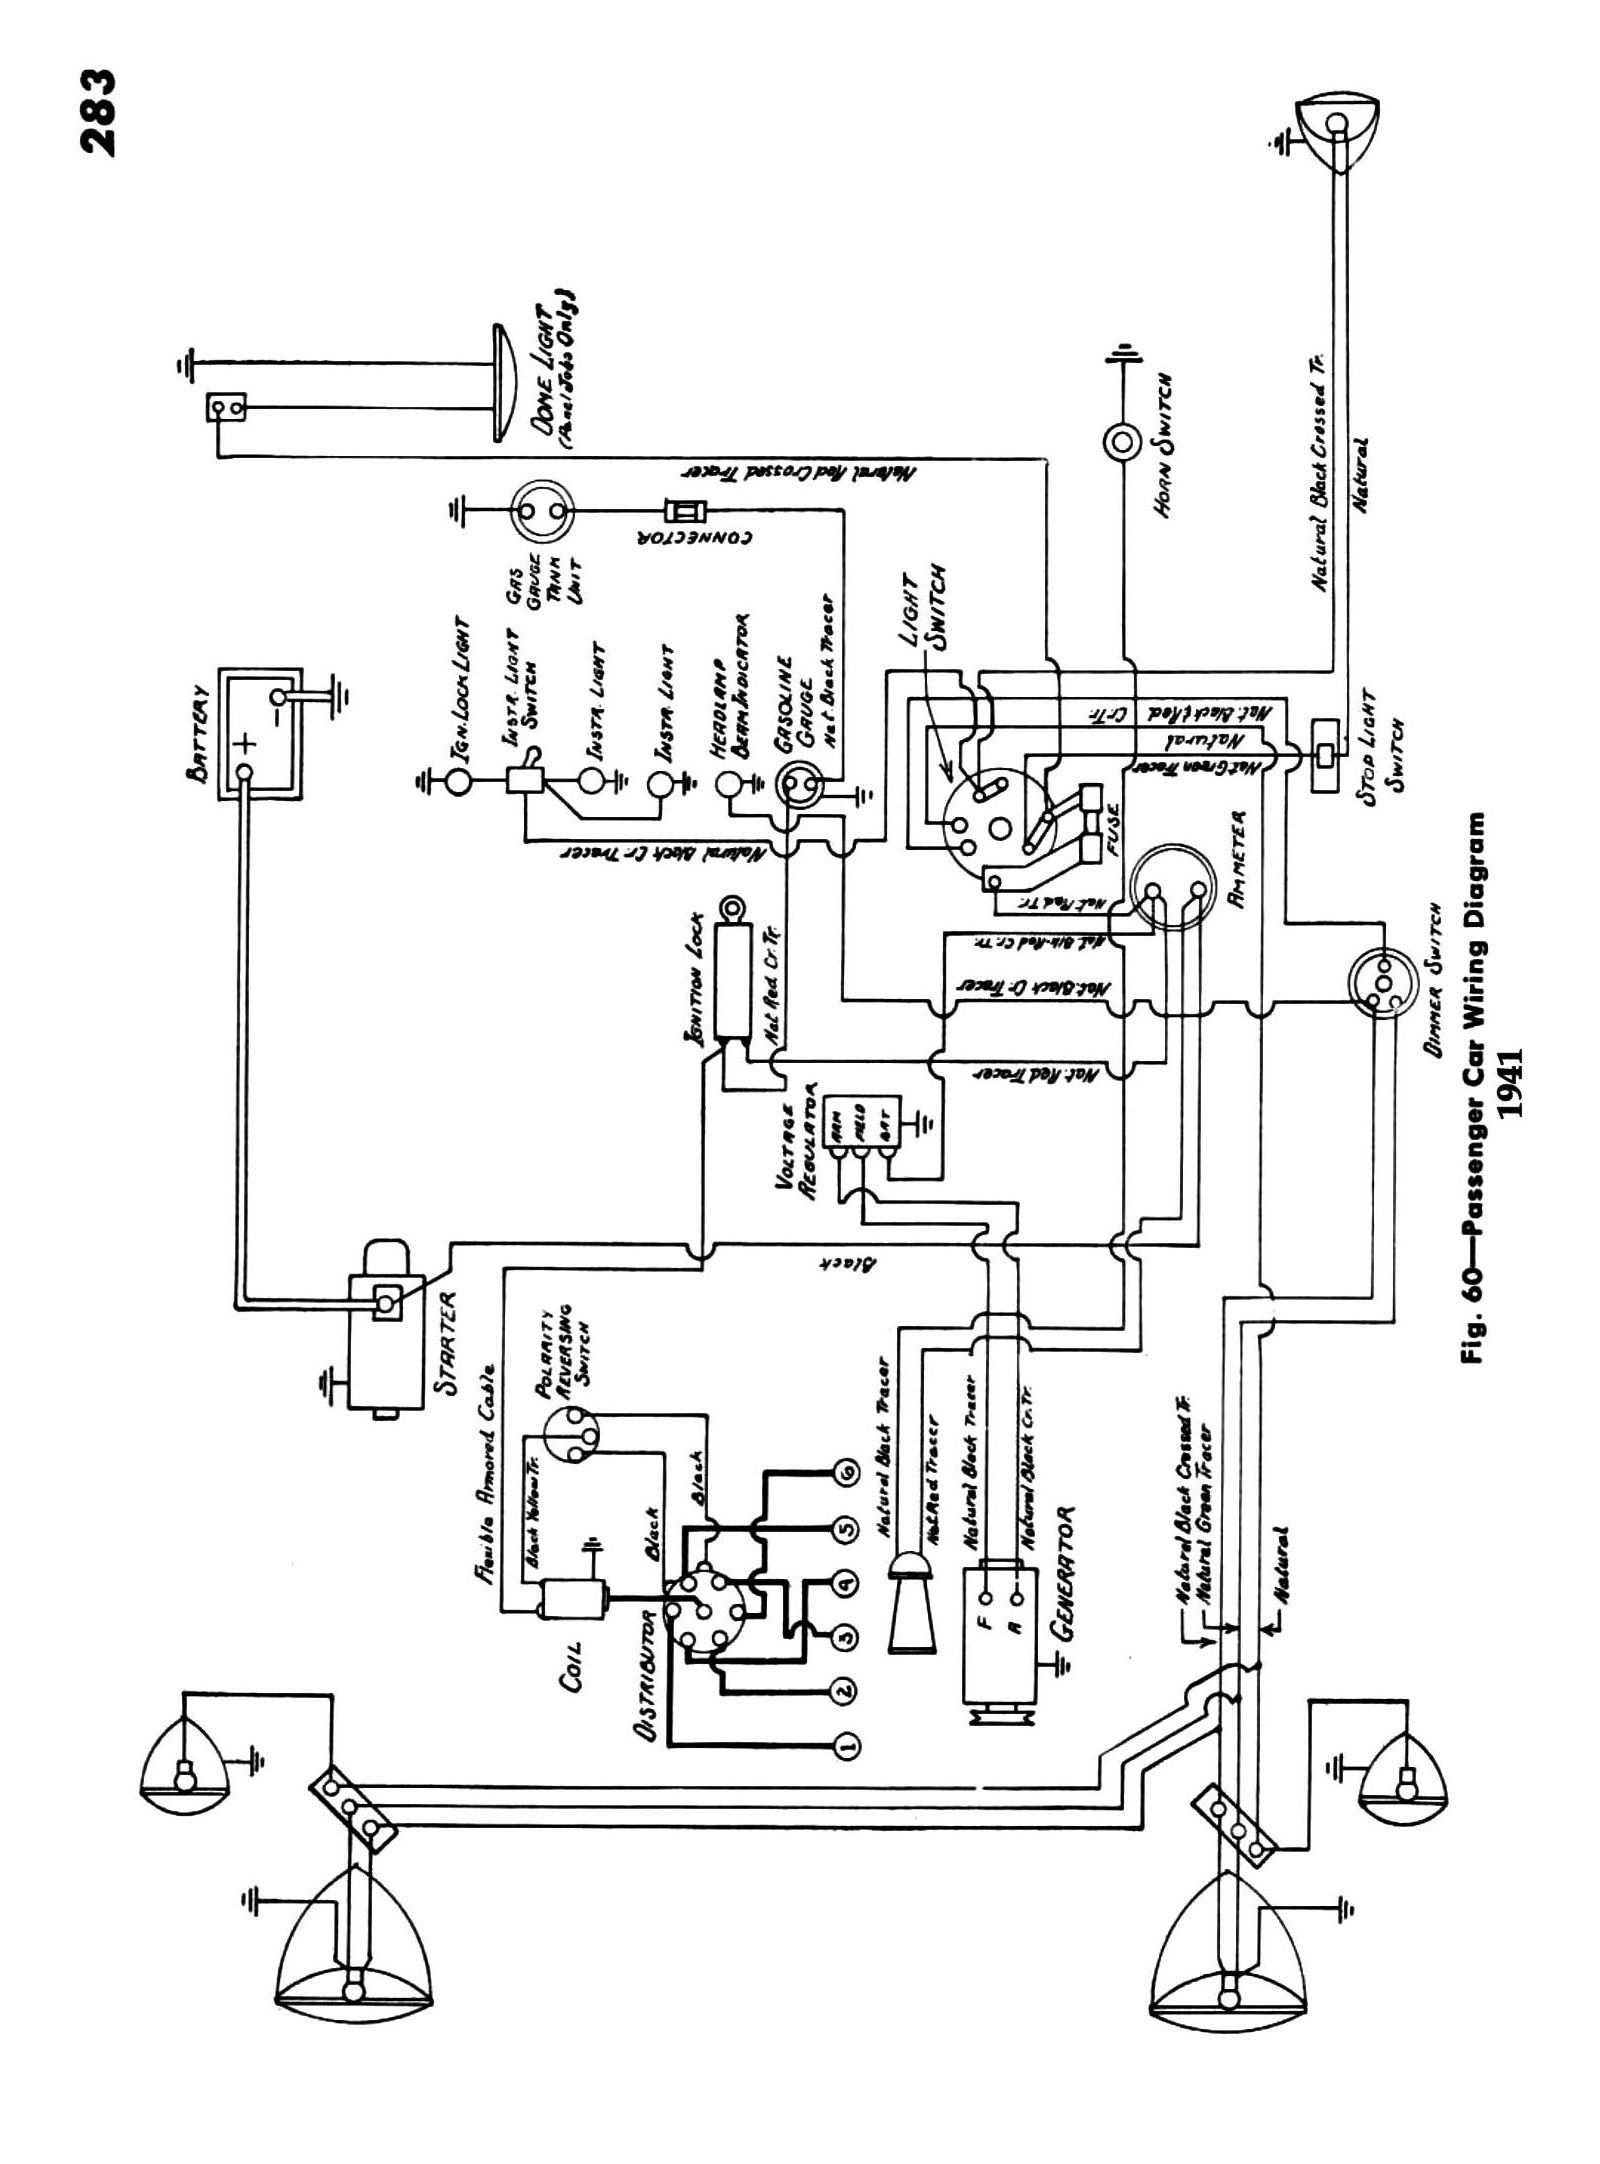 hight resolution of 60 apache wiring diagram wiring diagram for you 1961 chevy pickup wiring harness